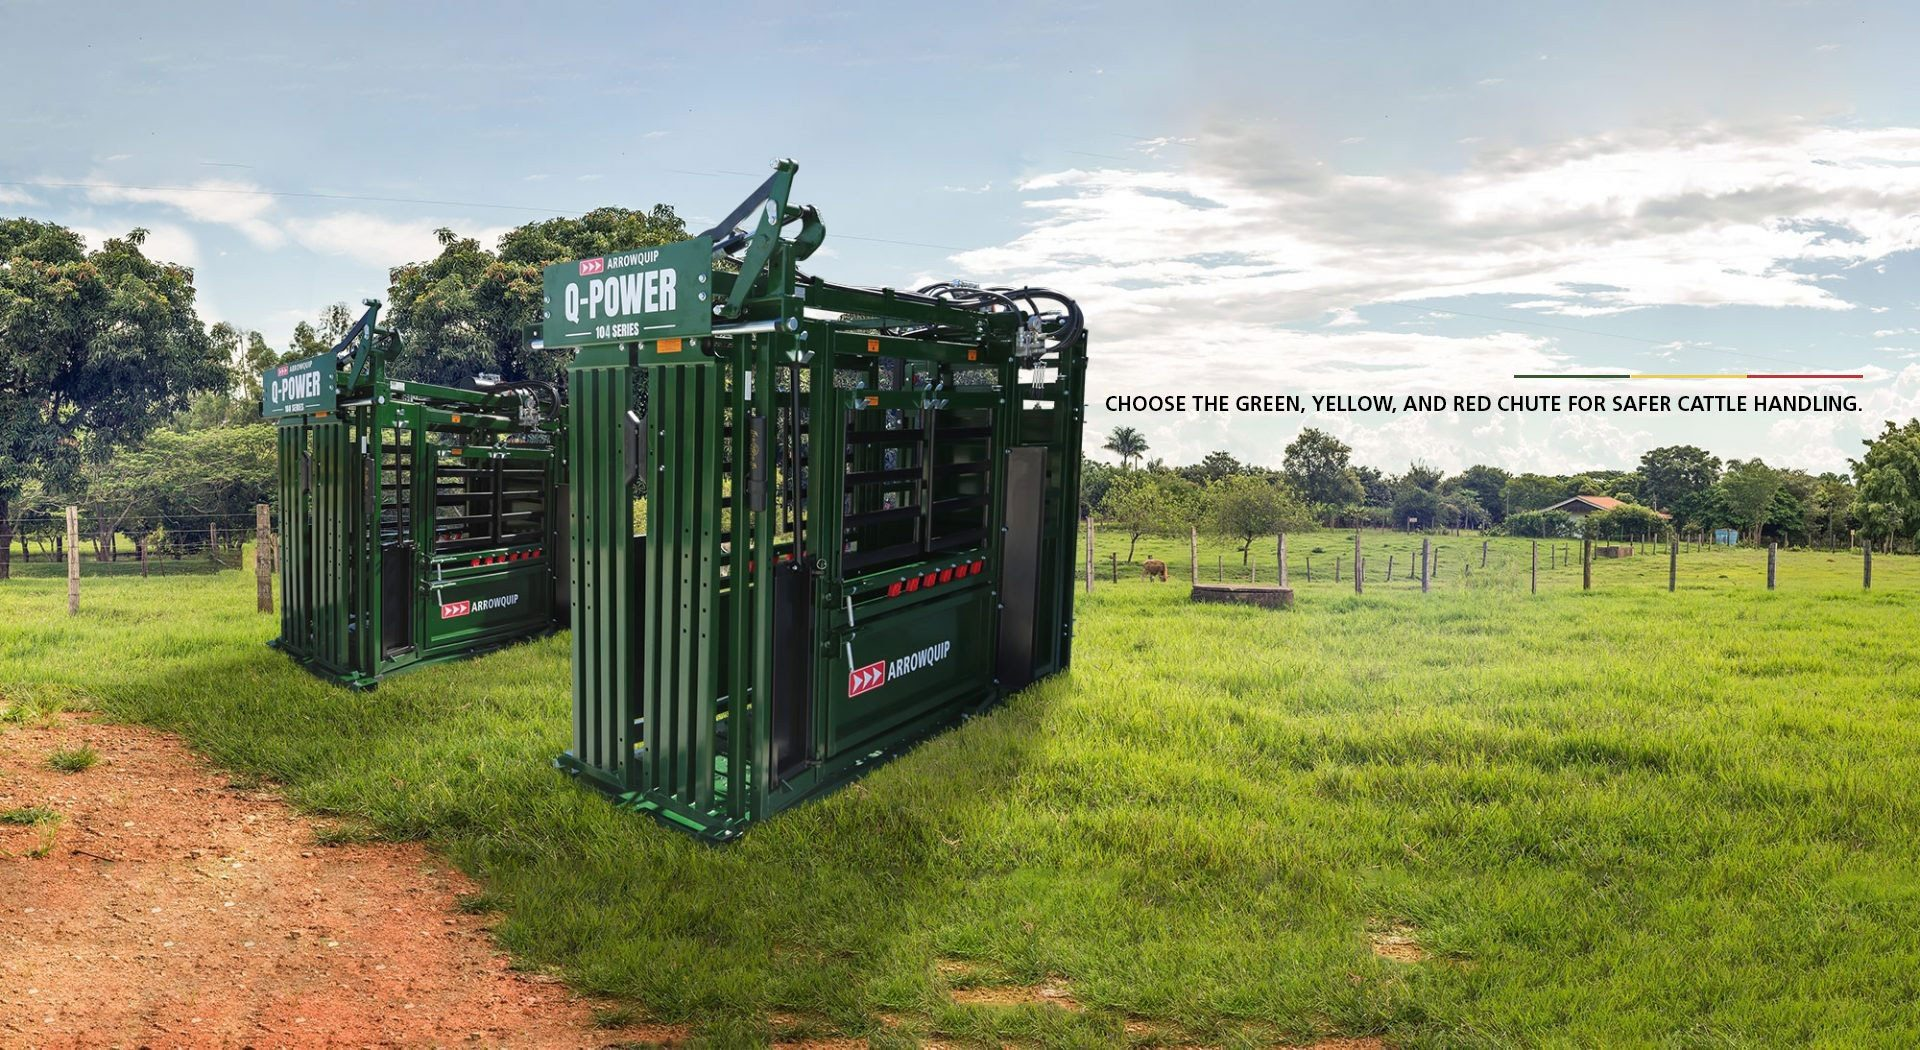 Q-Power 104 Series Standard and Deluxe Vet hydraulic squeeze chutes in grass pasture